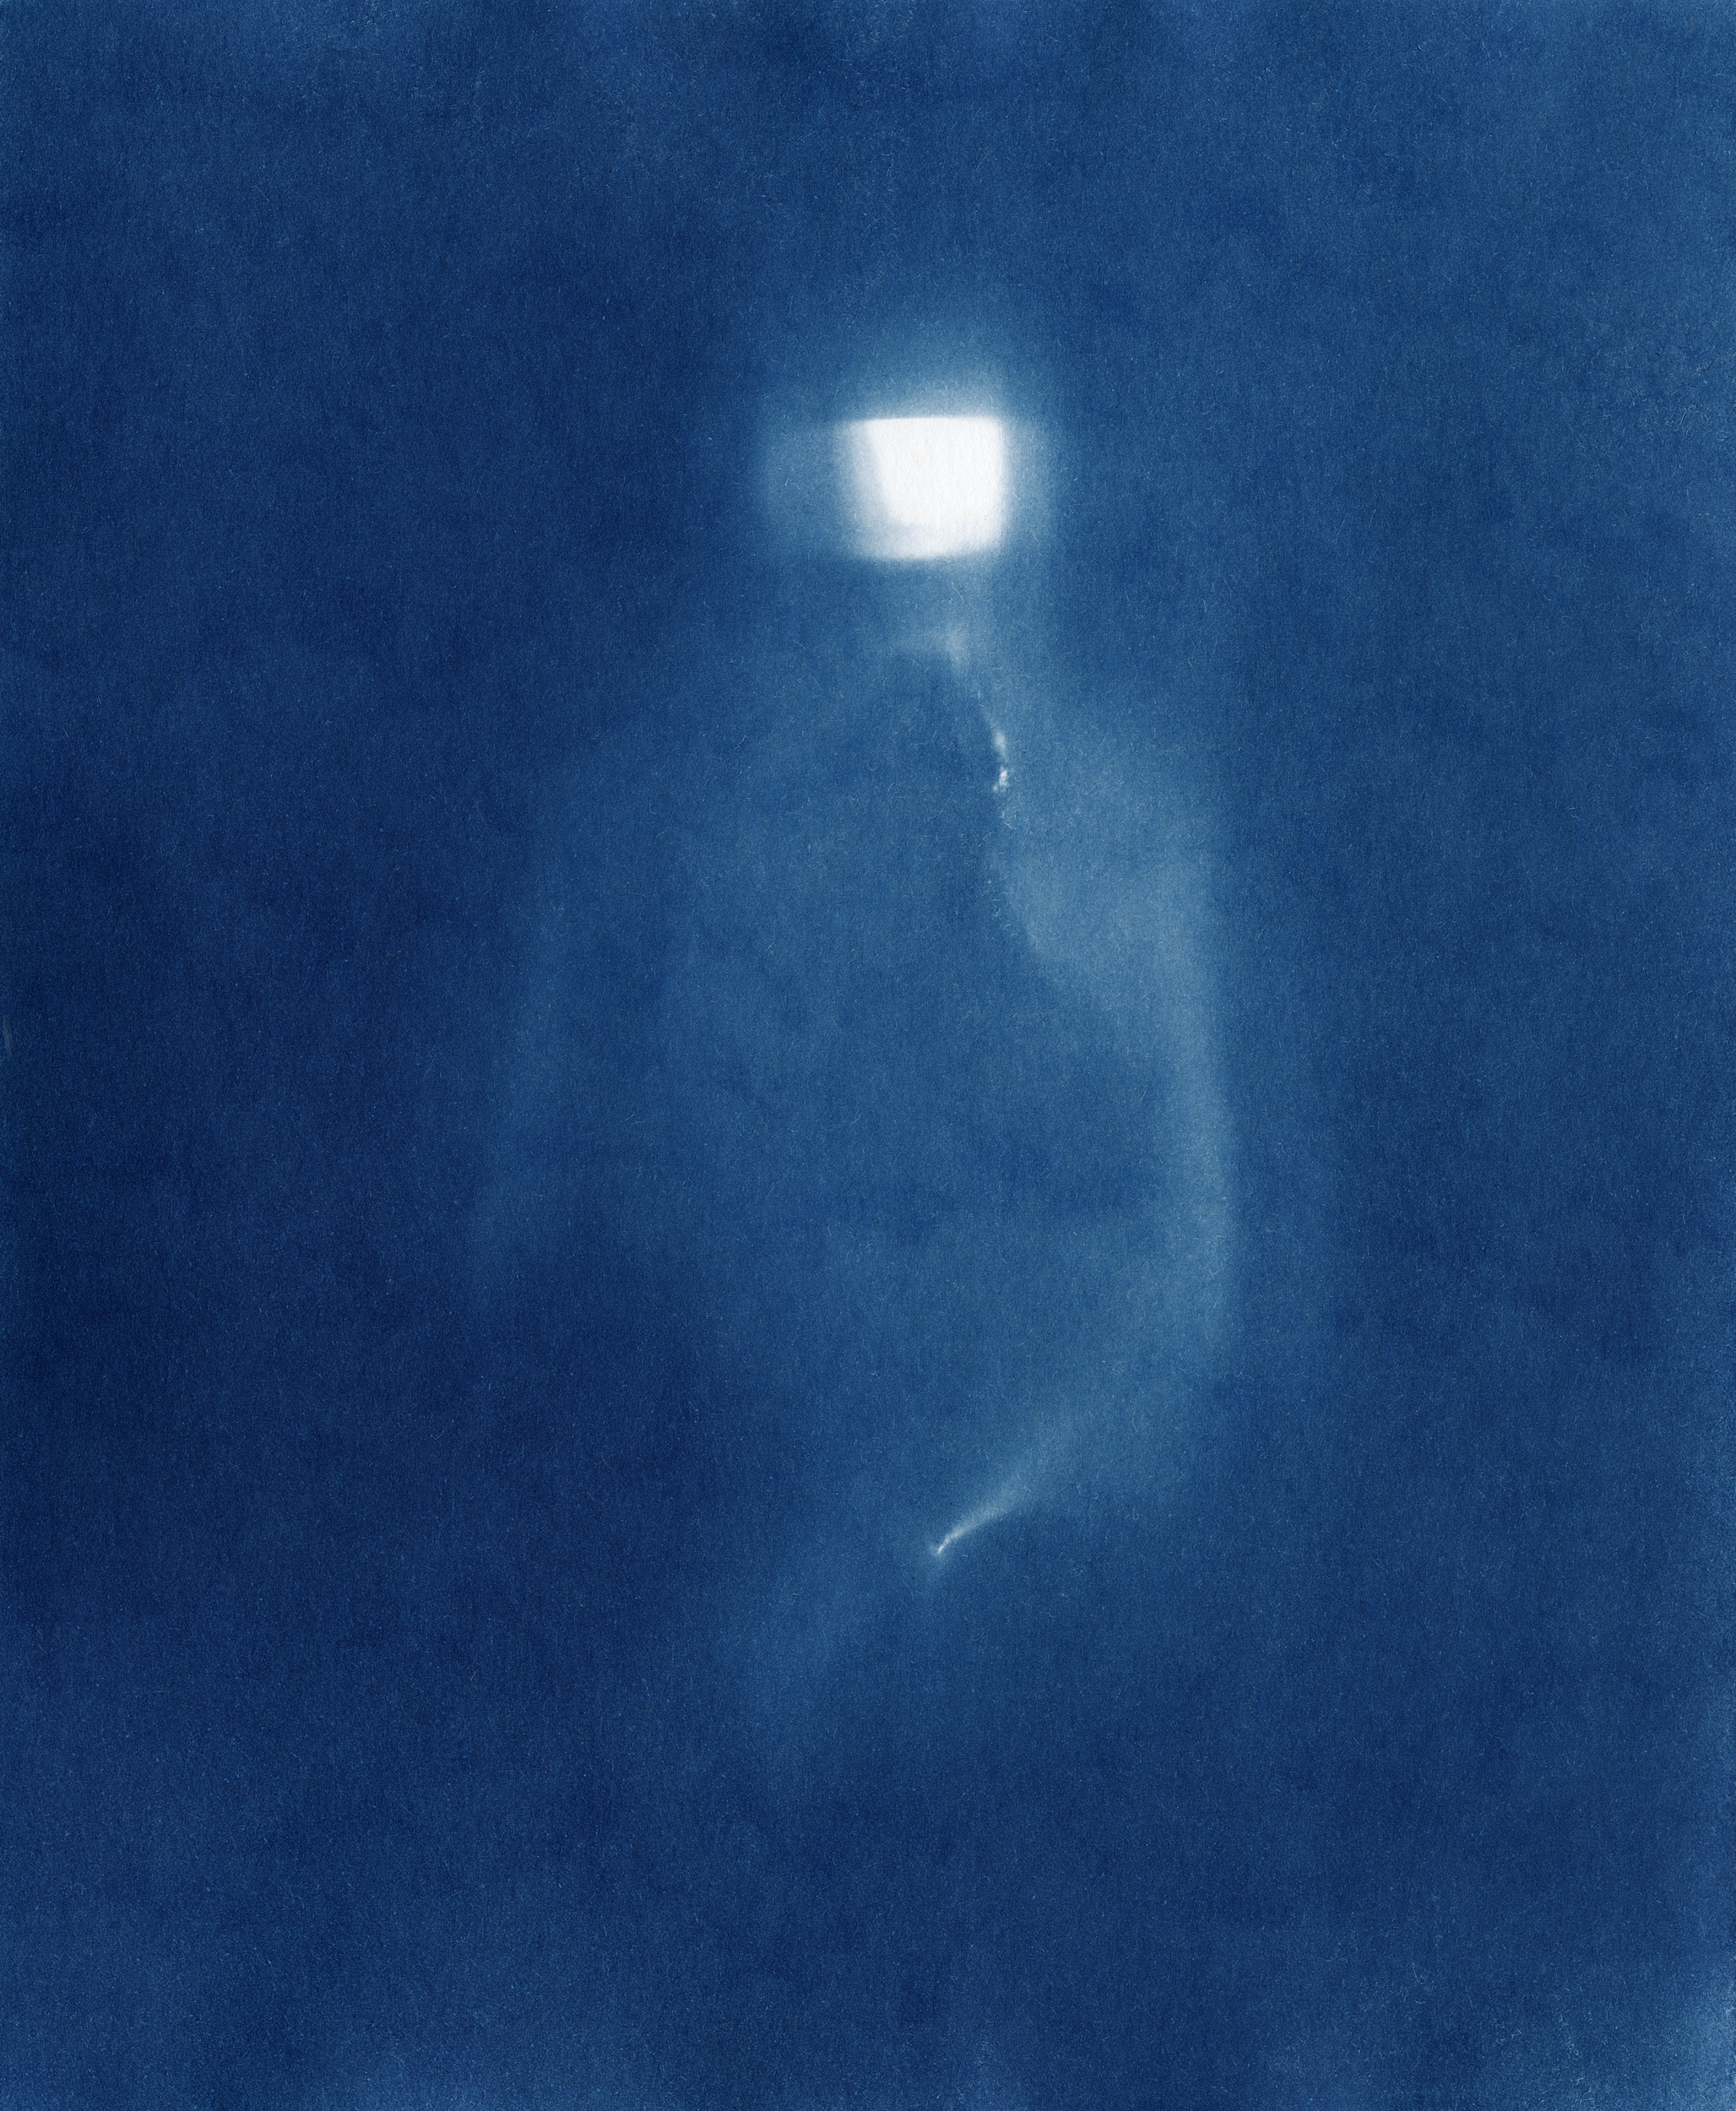 Ellenwood_Cyanotype_26.jpg